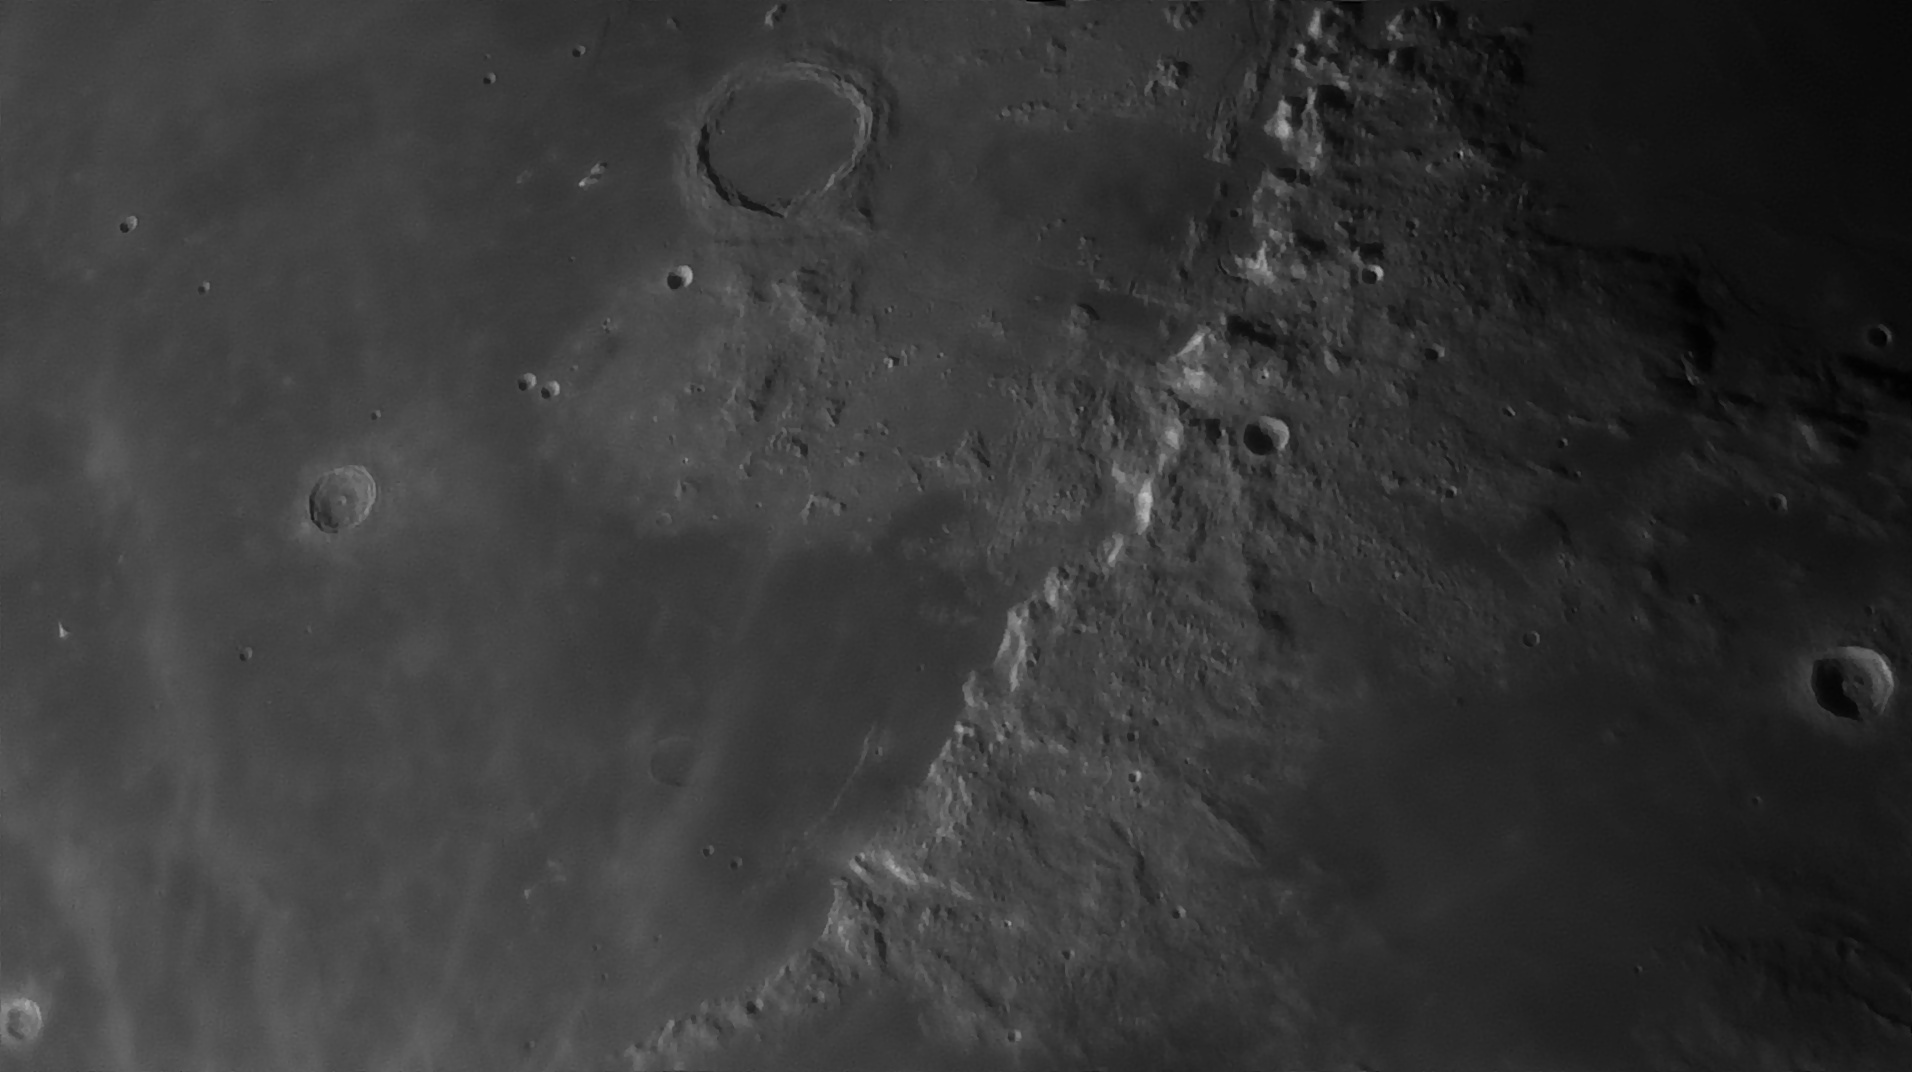 5e519553835fa_Moon_054904_160120_ZWOASI290MM_Rouge_23A_AS_P35_lapl6_ap1080_AI_Deconvolution_10--.jpg.beb0fabe37bd70806b97f3b29e501ea9.jpg